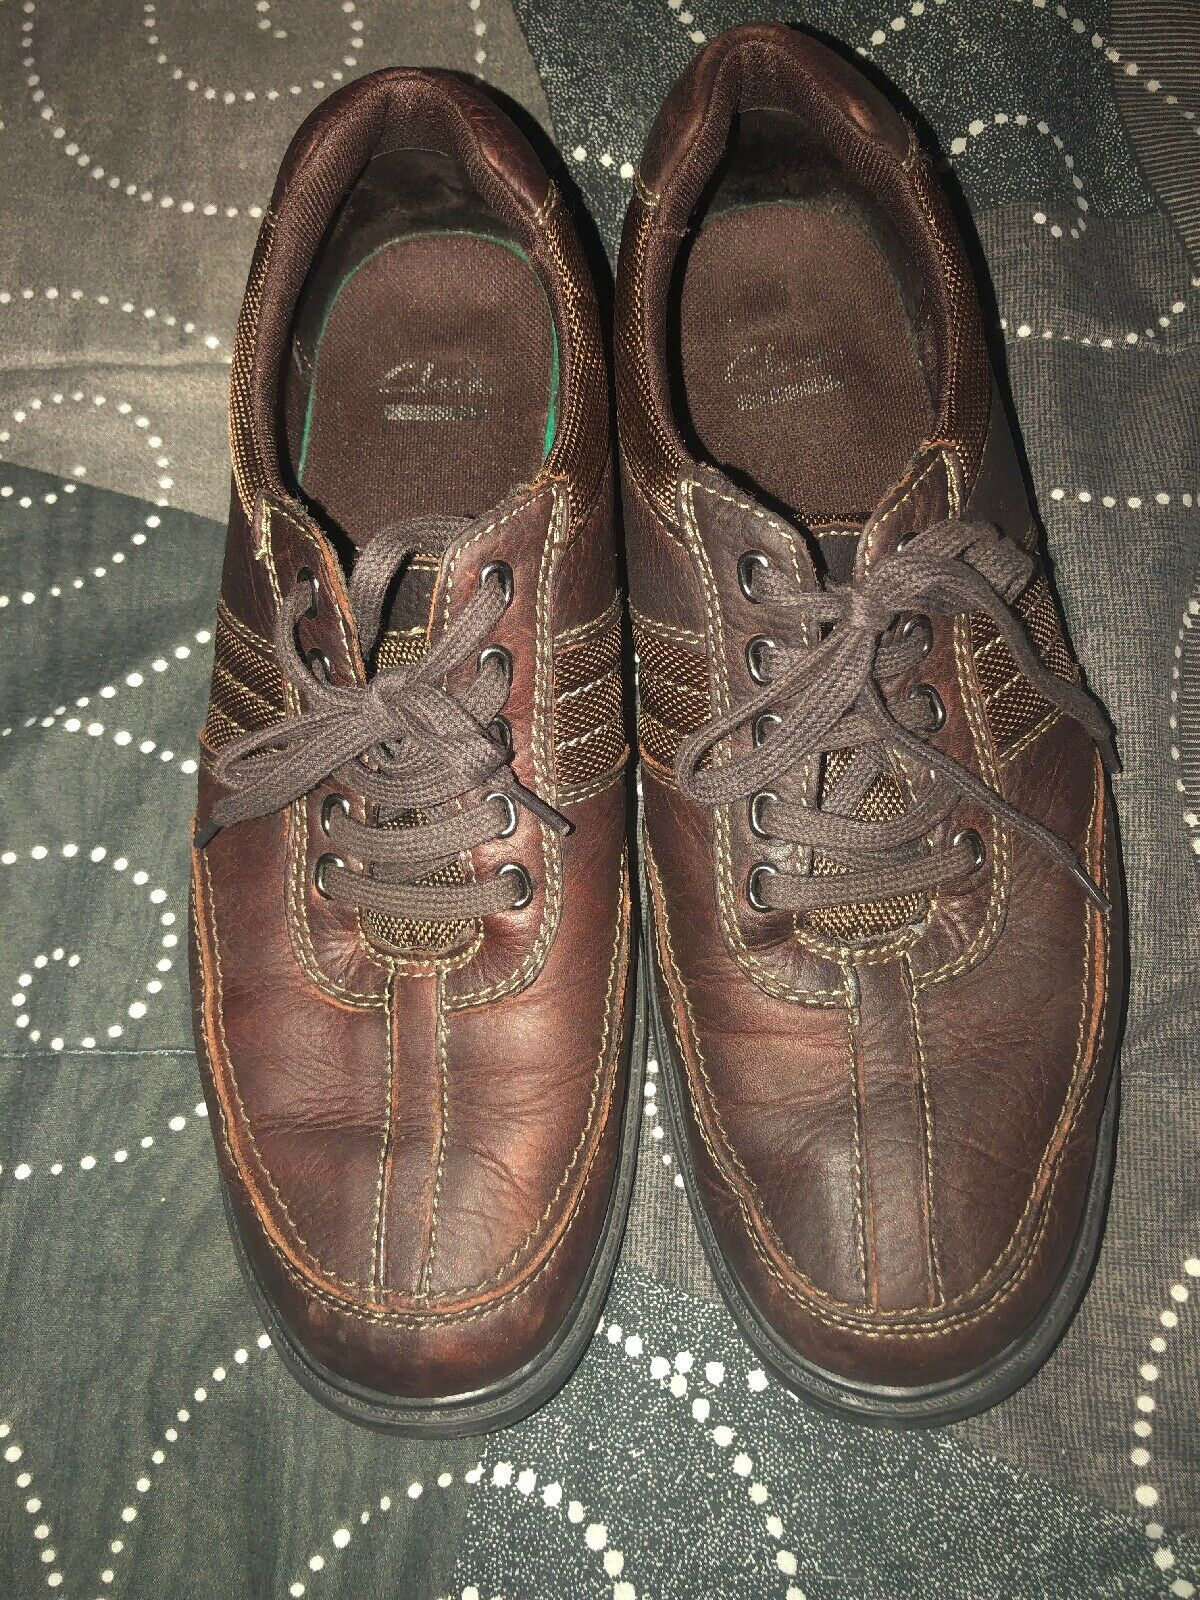 Clarks Keeler Mens Leather Casual Oxfords Walking shoes Size 10.5 M Brown